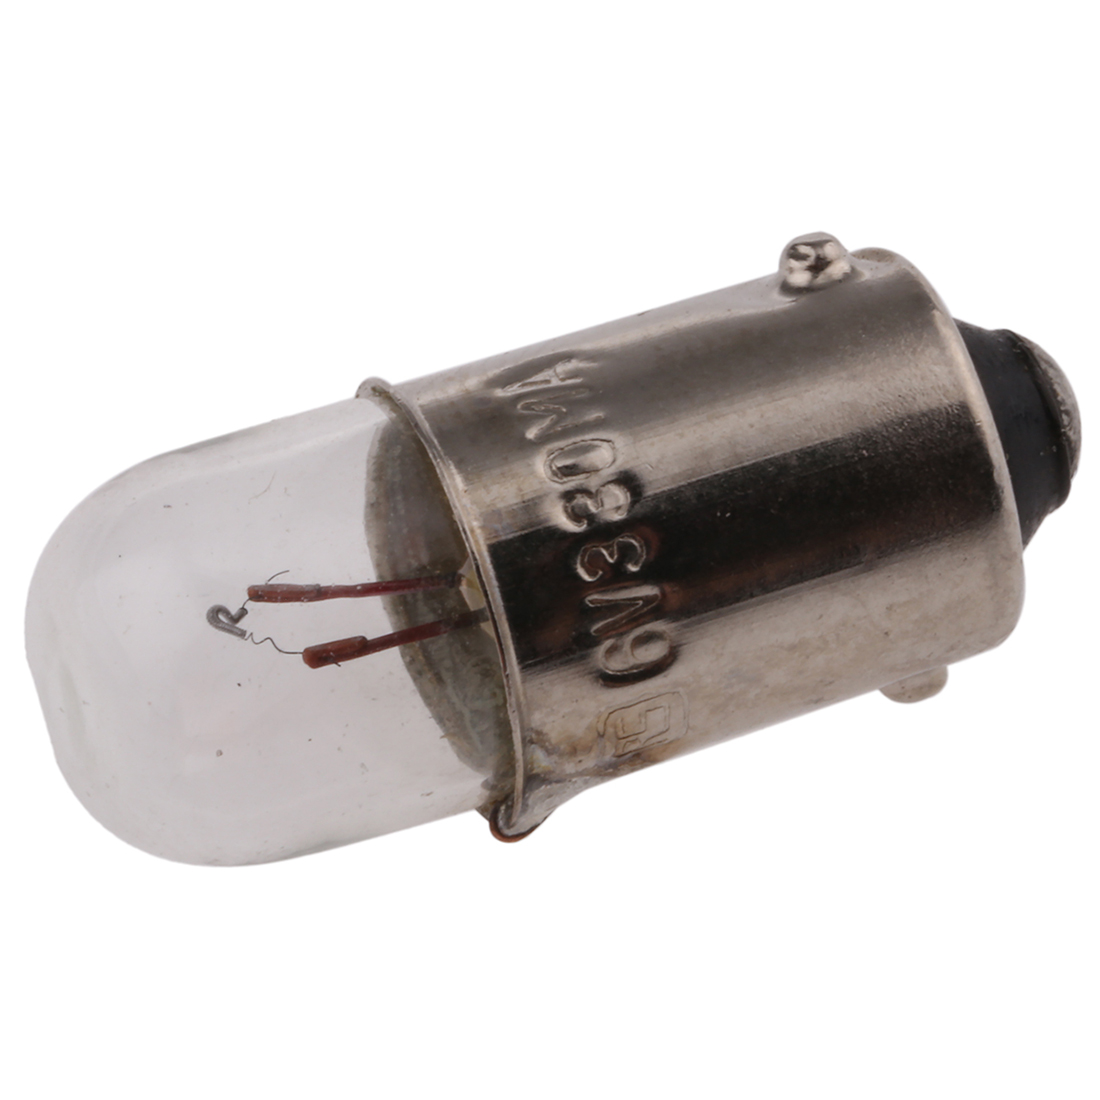 BA9s Indicator Light, Clear, 6 V, 330 mA, 15000h - Pack of 10